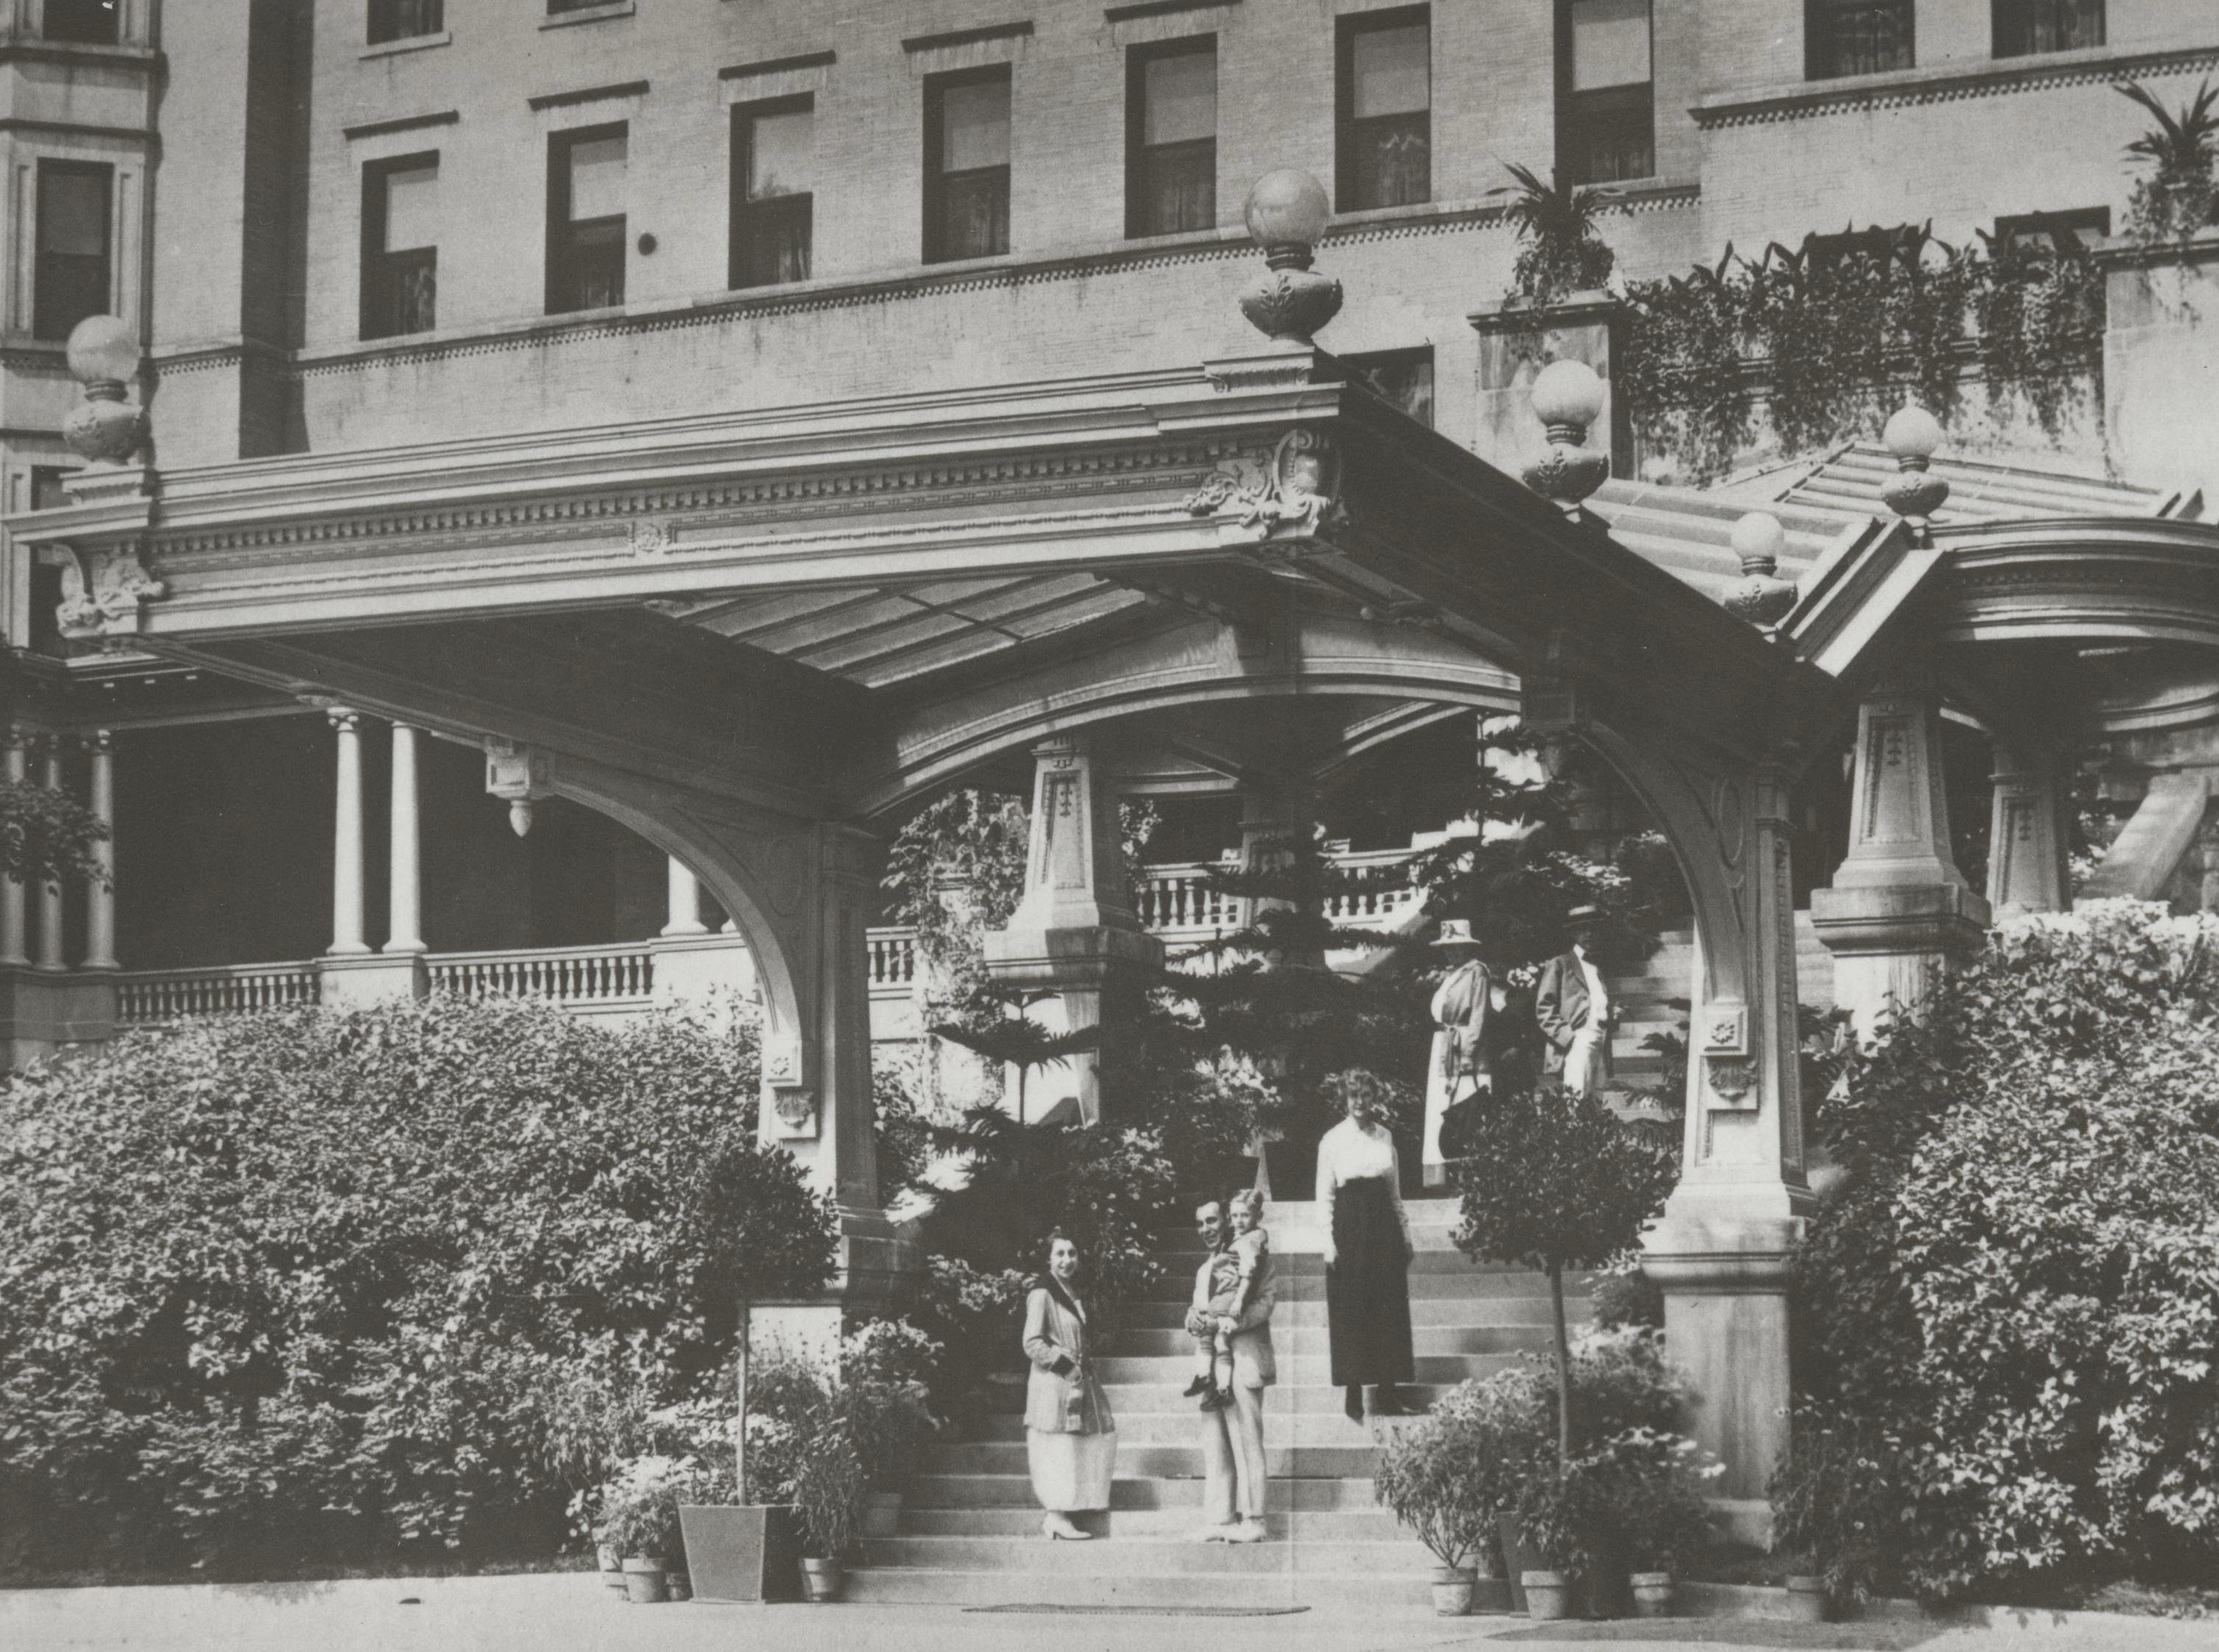 Exterior of the French Lick Springs Hotel in 1917.